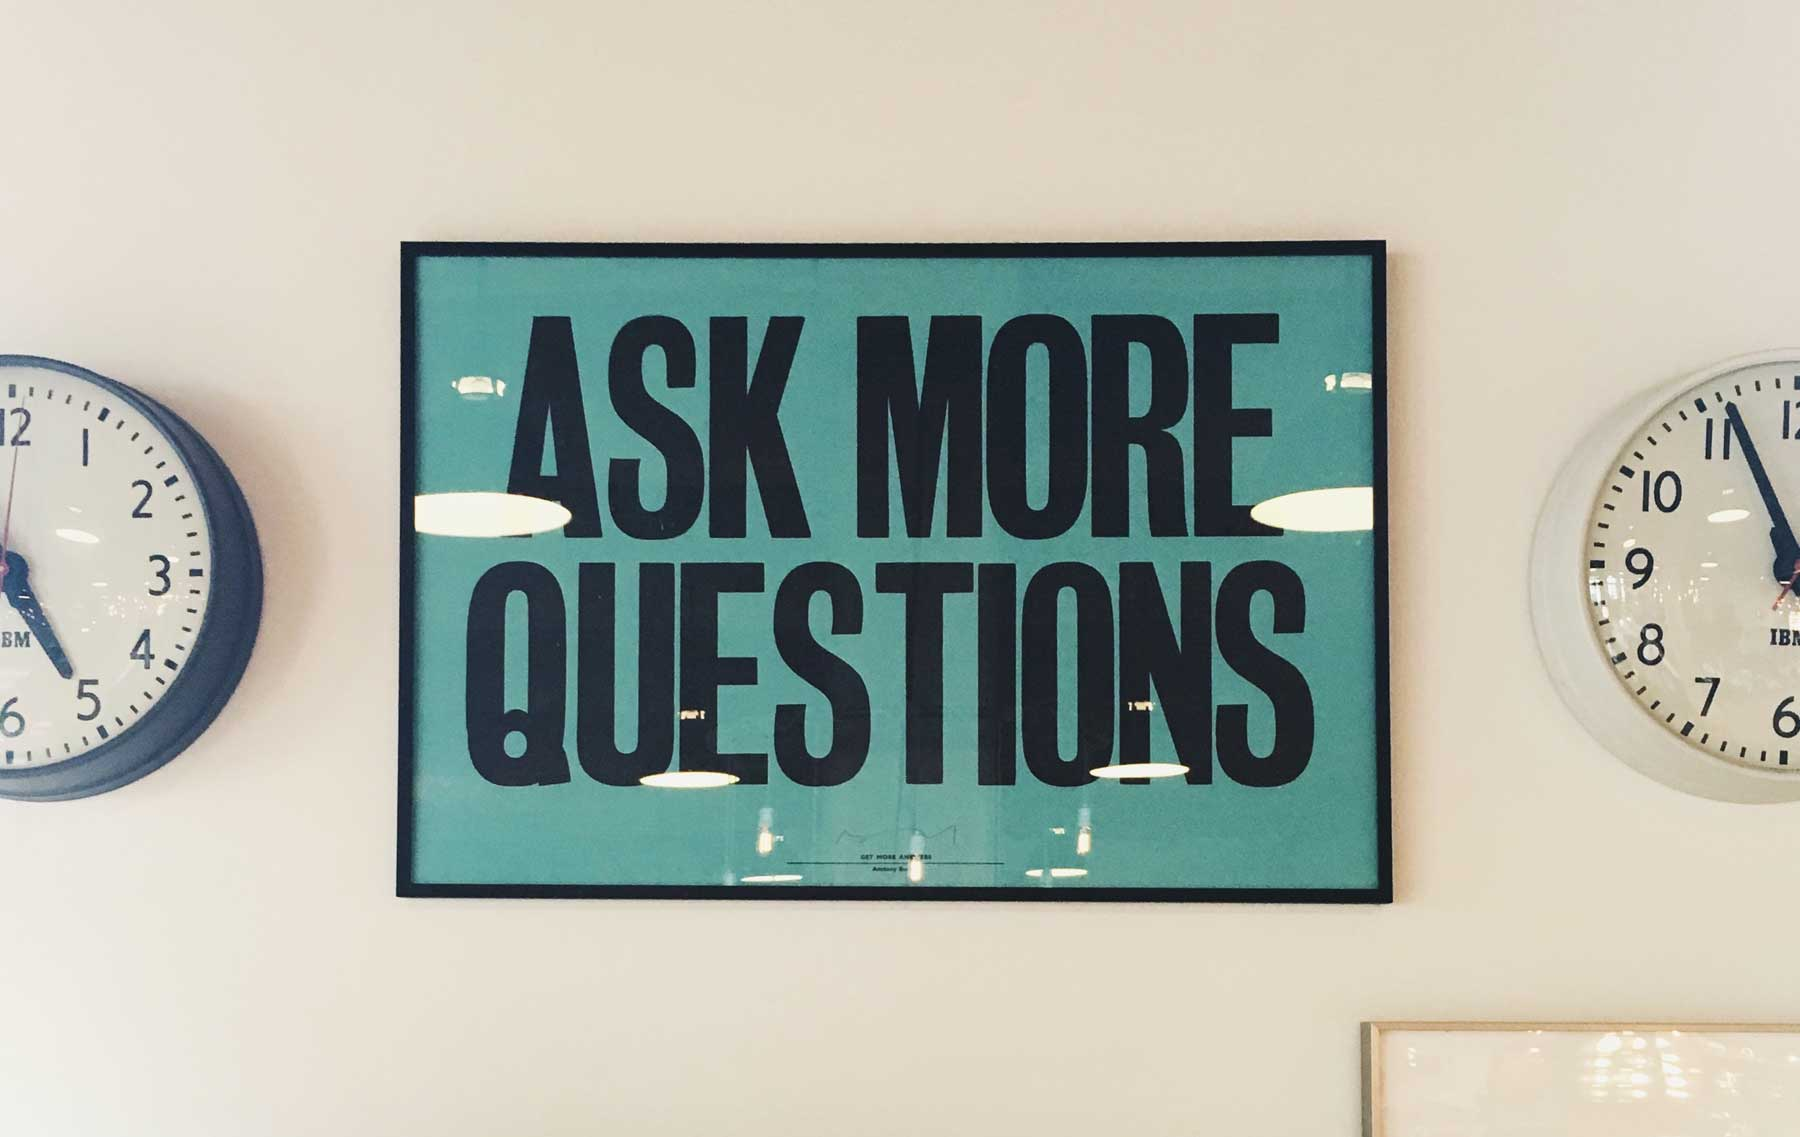 Lesson 3 - Never be afraid to ask questions